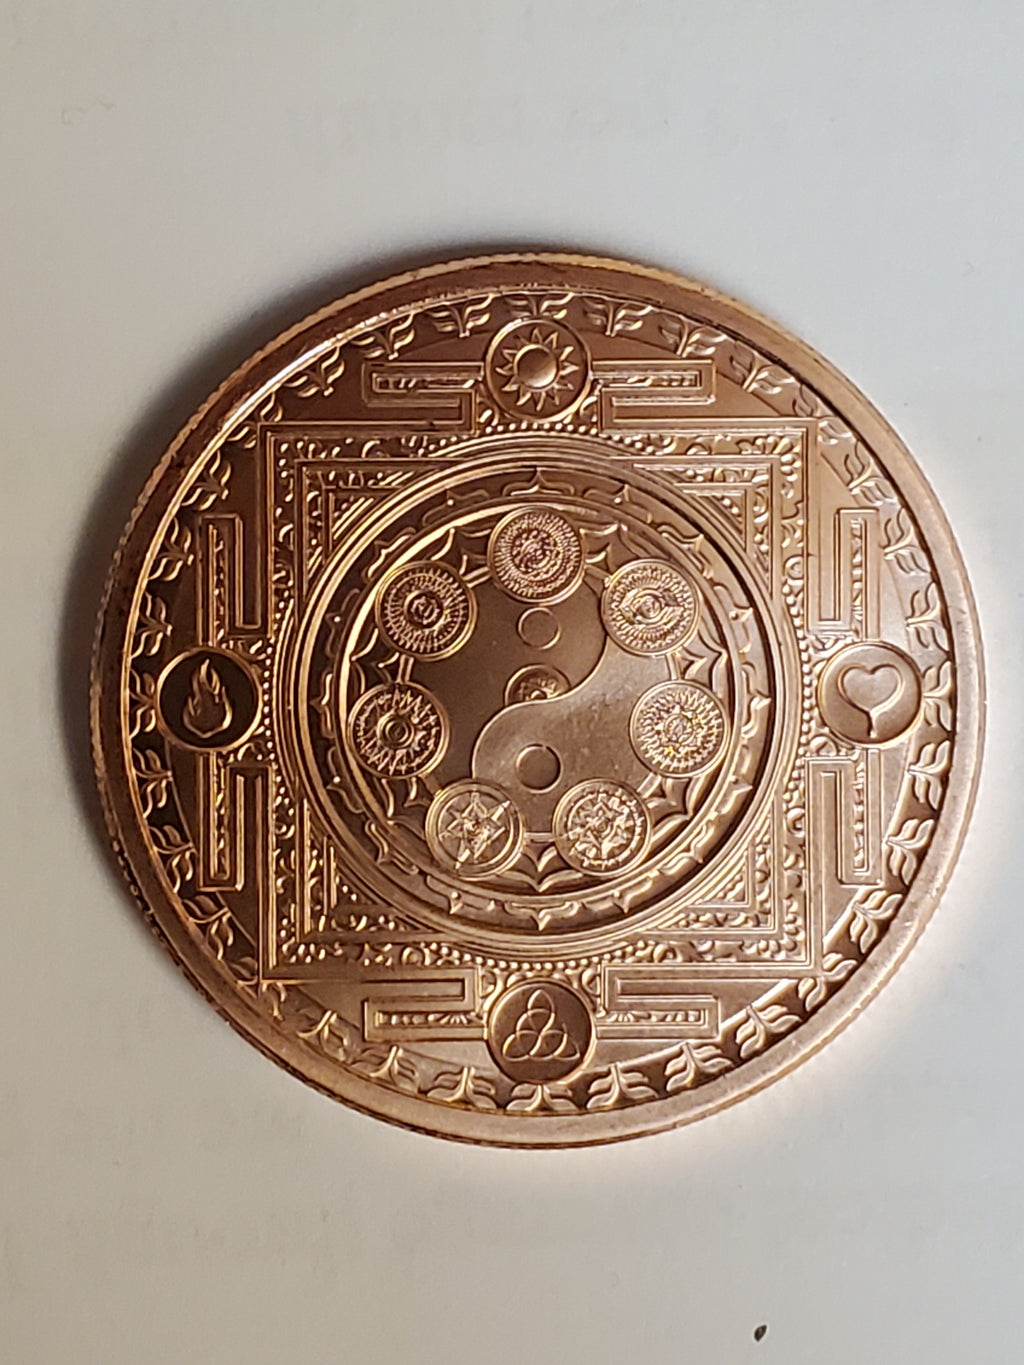 Cosmic Archetype 1 oz Copper round( Mini Mintage) Only 1145 minted